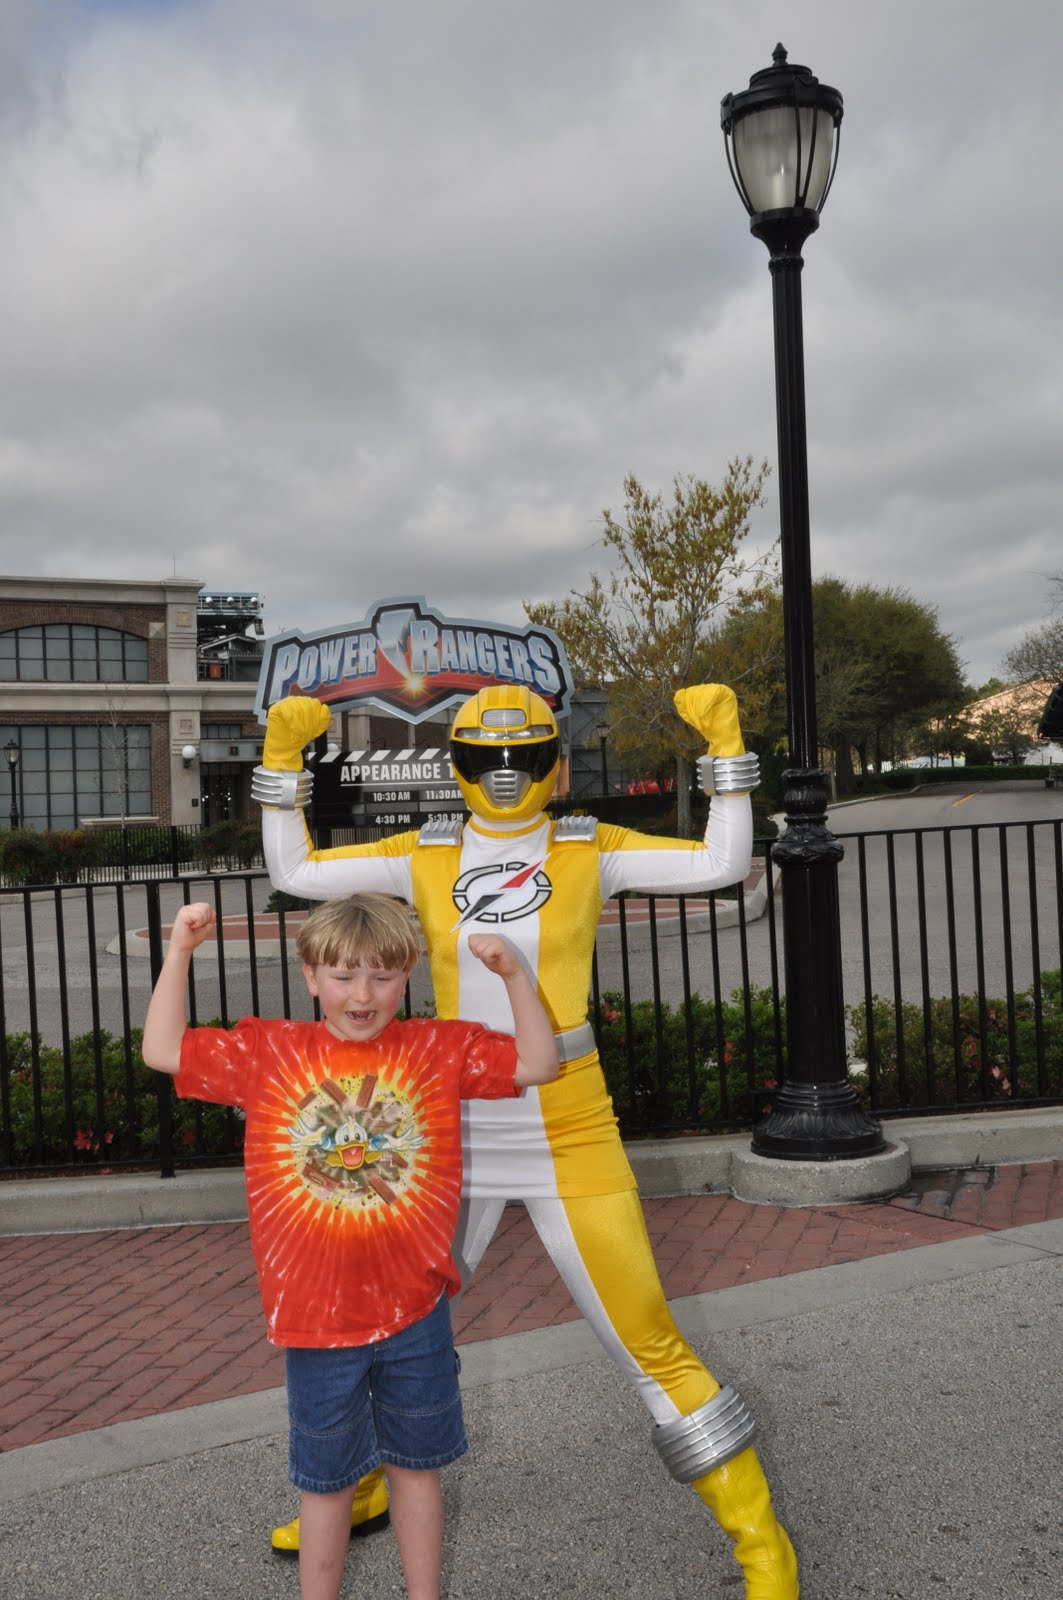 Williams family power rangers meet and greet ends august 7 2010 at we have met and greeted the power rangers on almost every visit to the walt disney world resort so it will be a bit unusual not hearing the roar of their m4hsunfo